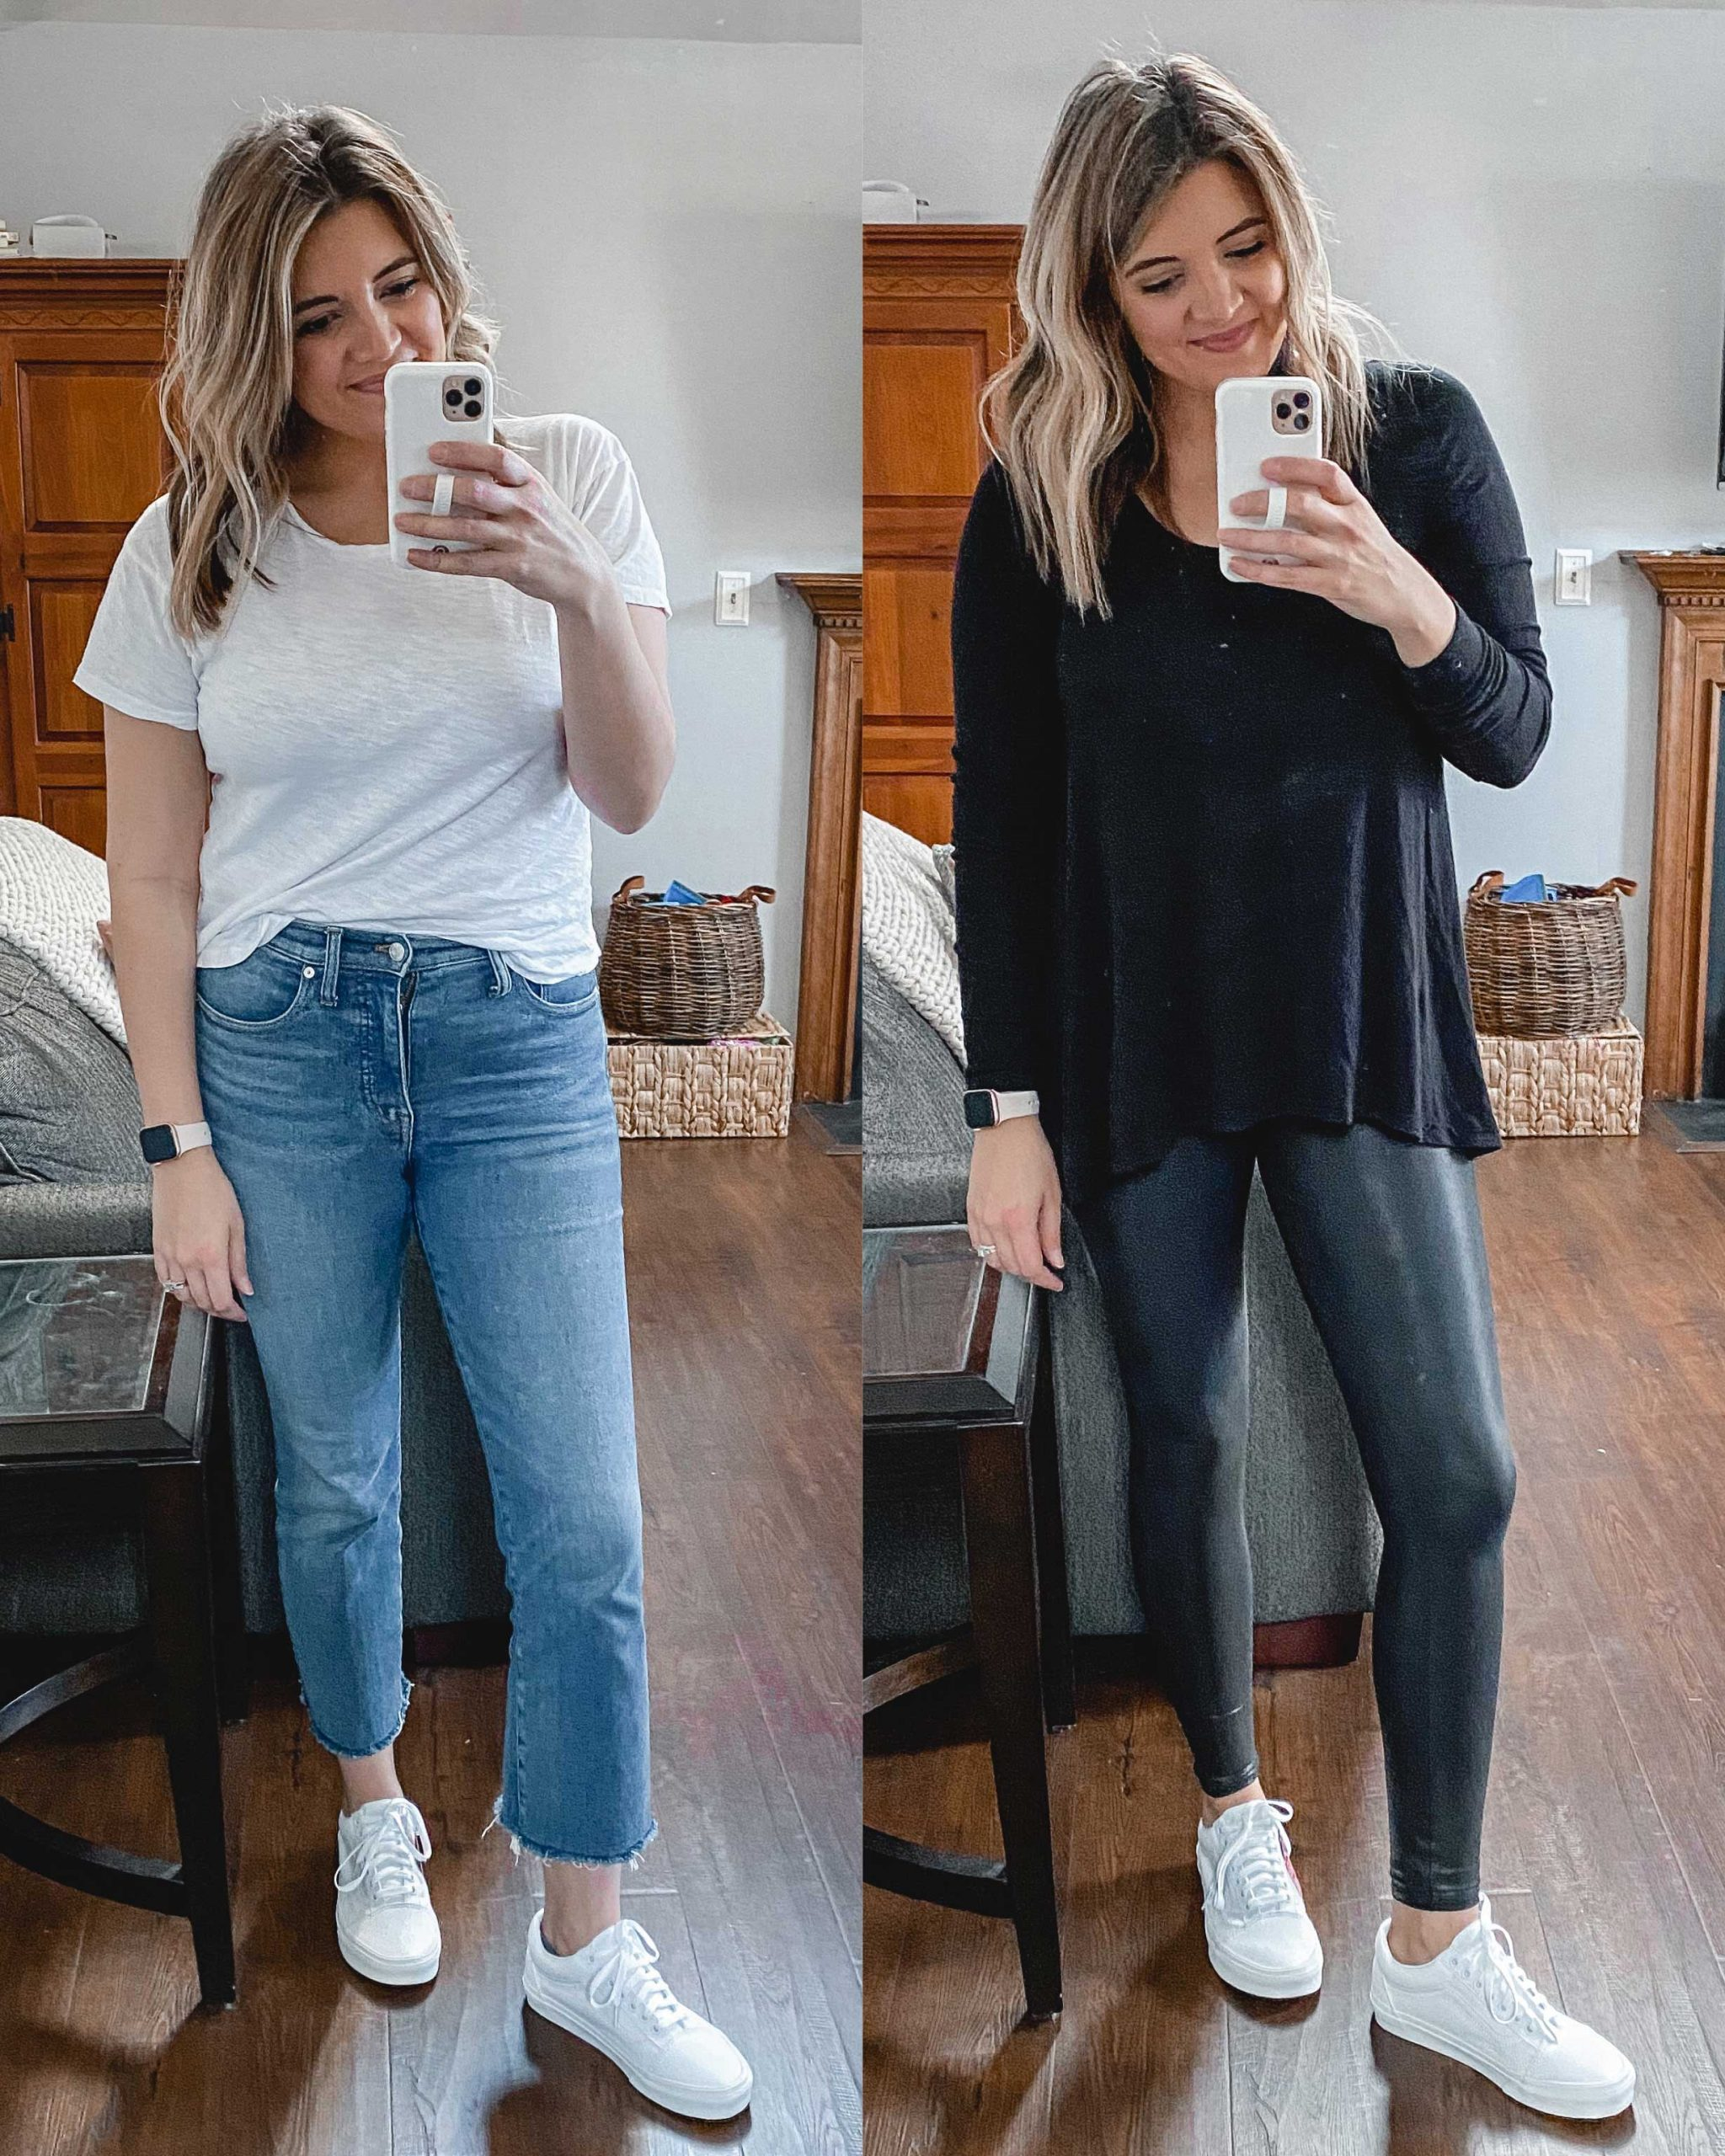 Virginia blogger, Lauren Dix, tries on 10 different pairs of white sneakers for the ultimate white sneaker review! She wears the Vans Old Skool sneakers with both jeans and leggings!